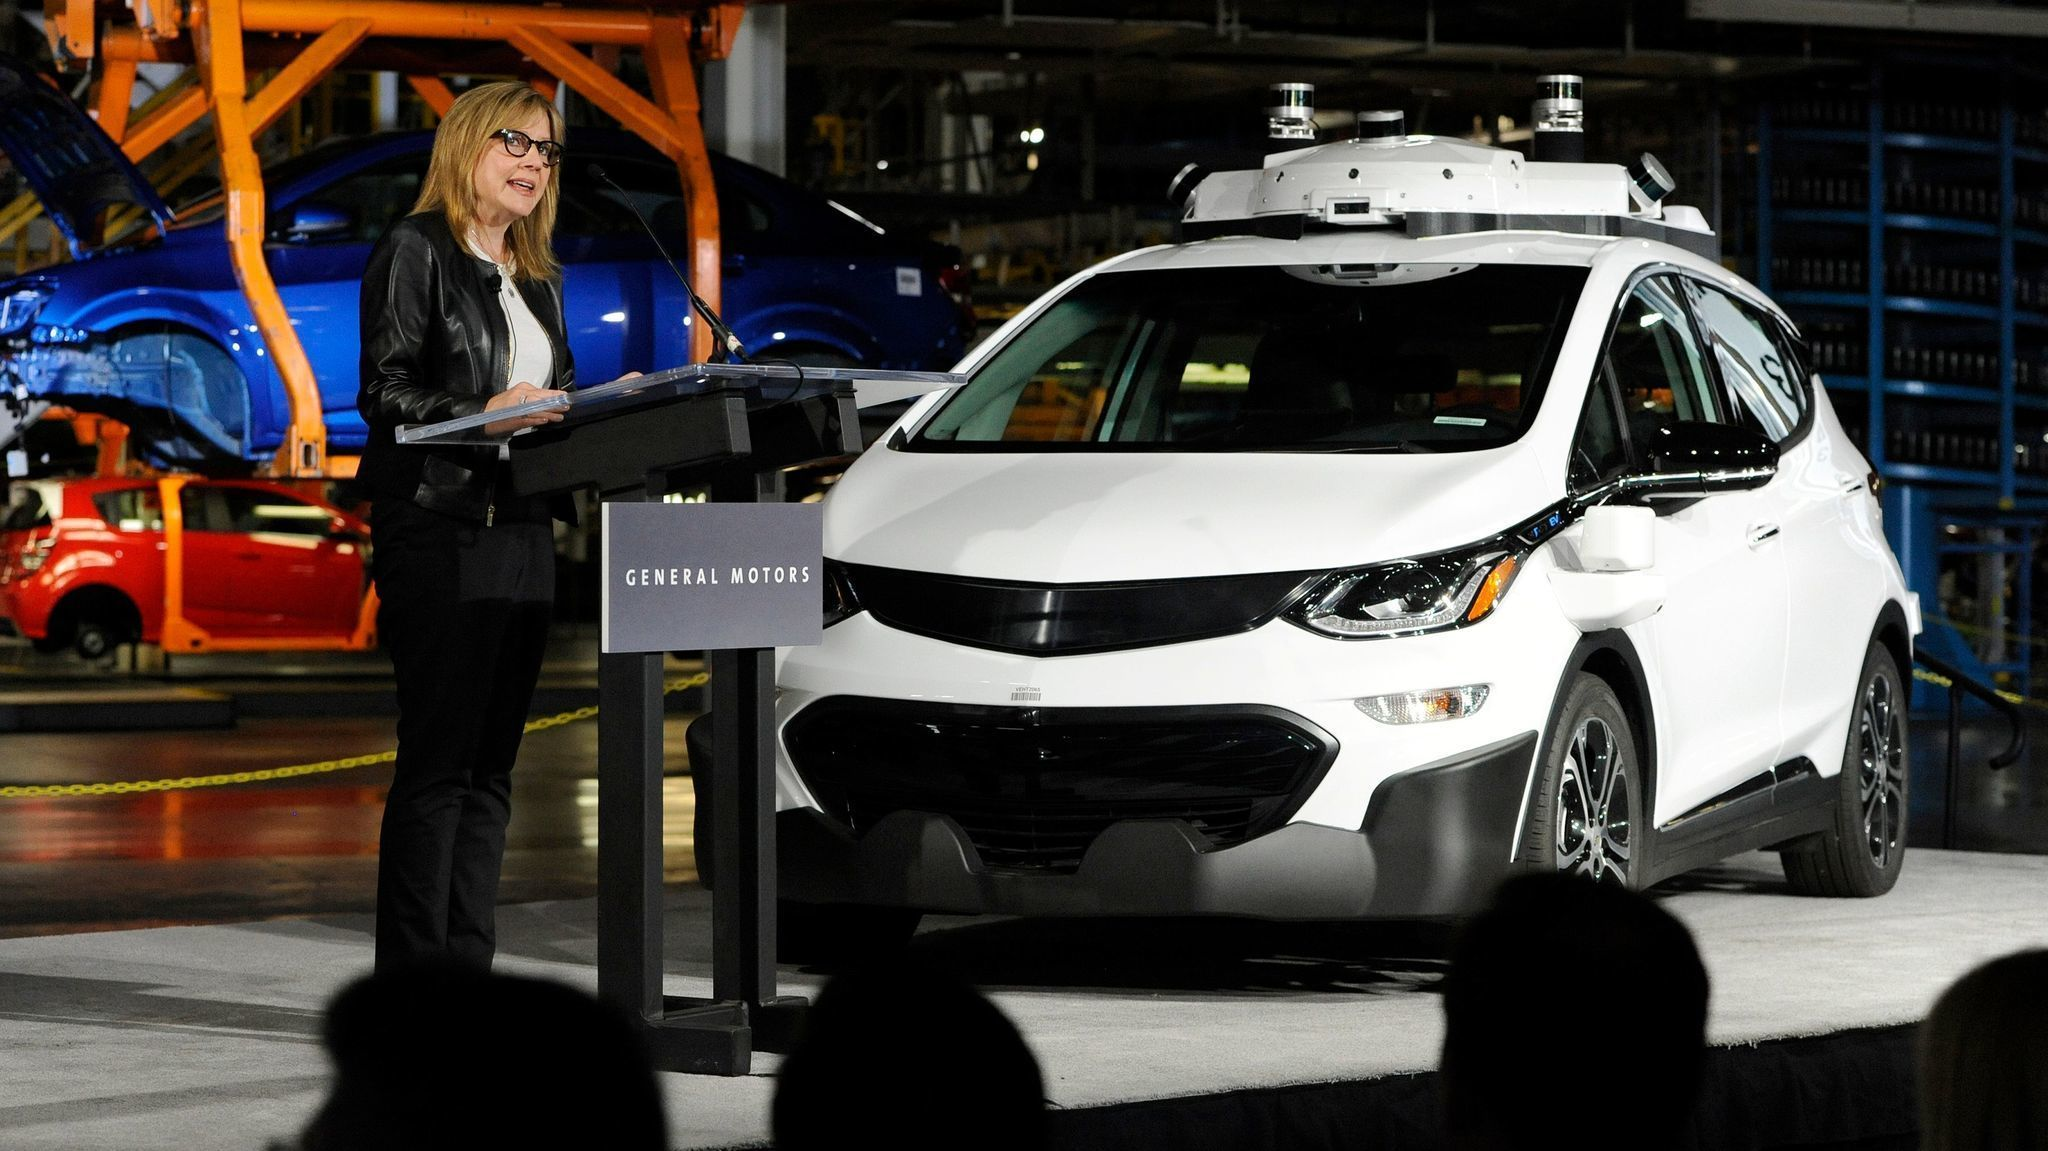 Disney Adds General Motors Ceo Mary Barra To Its Board Of